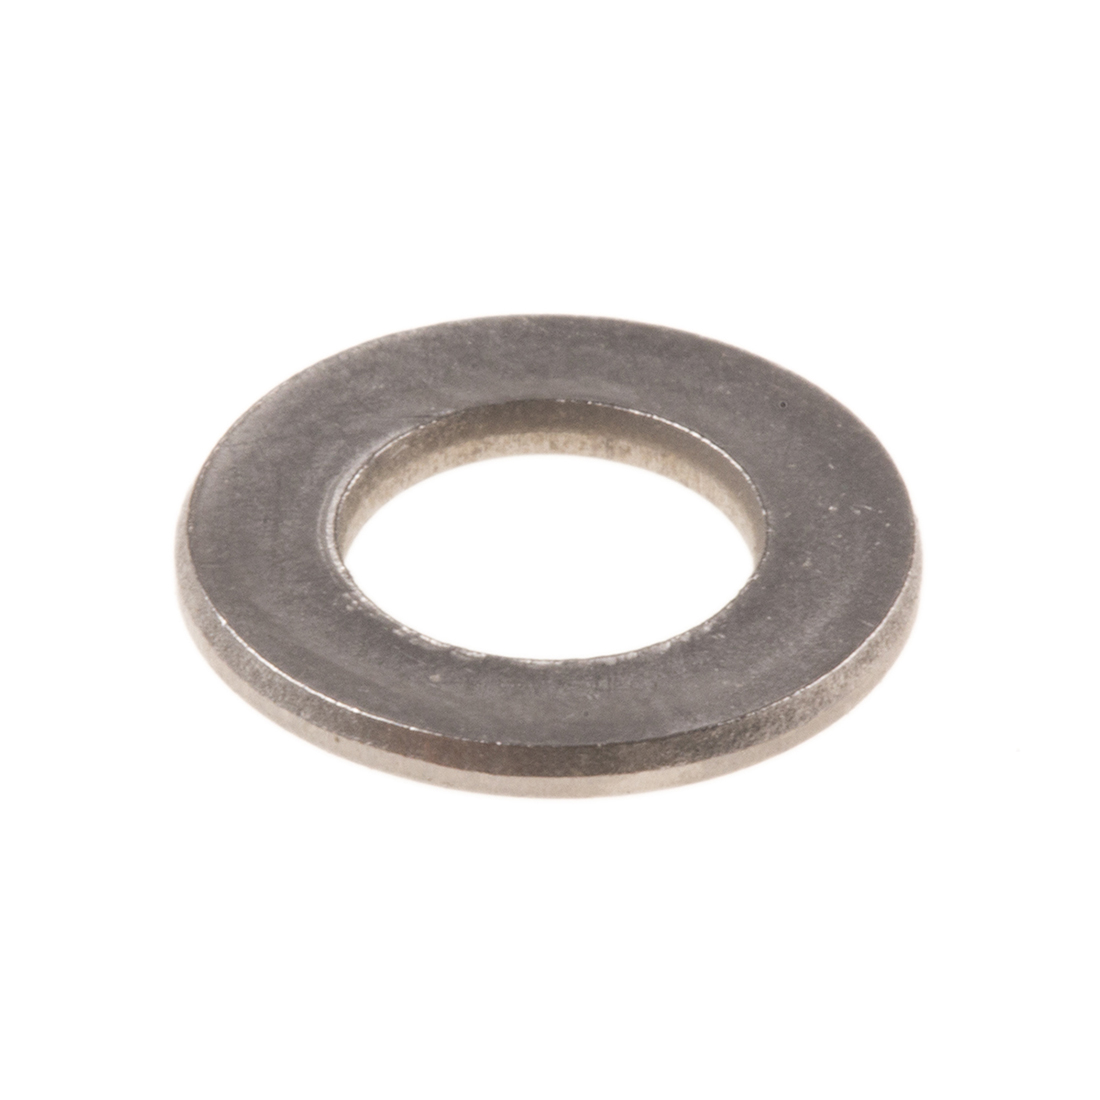 Stainless Steel Plain Washer, 1mm Thickness, M5 (Form A), A4 316 - 100 Pack